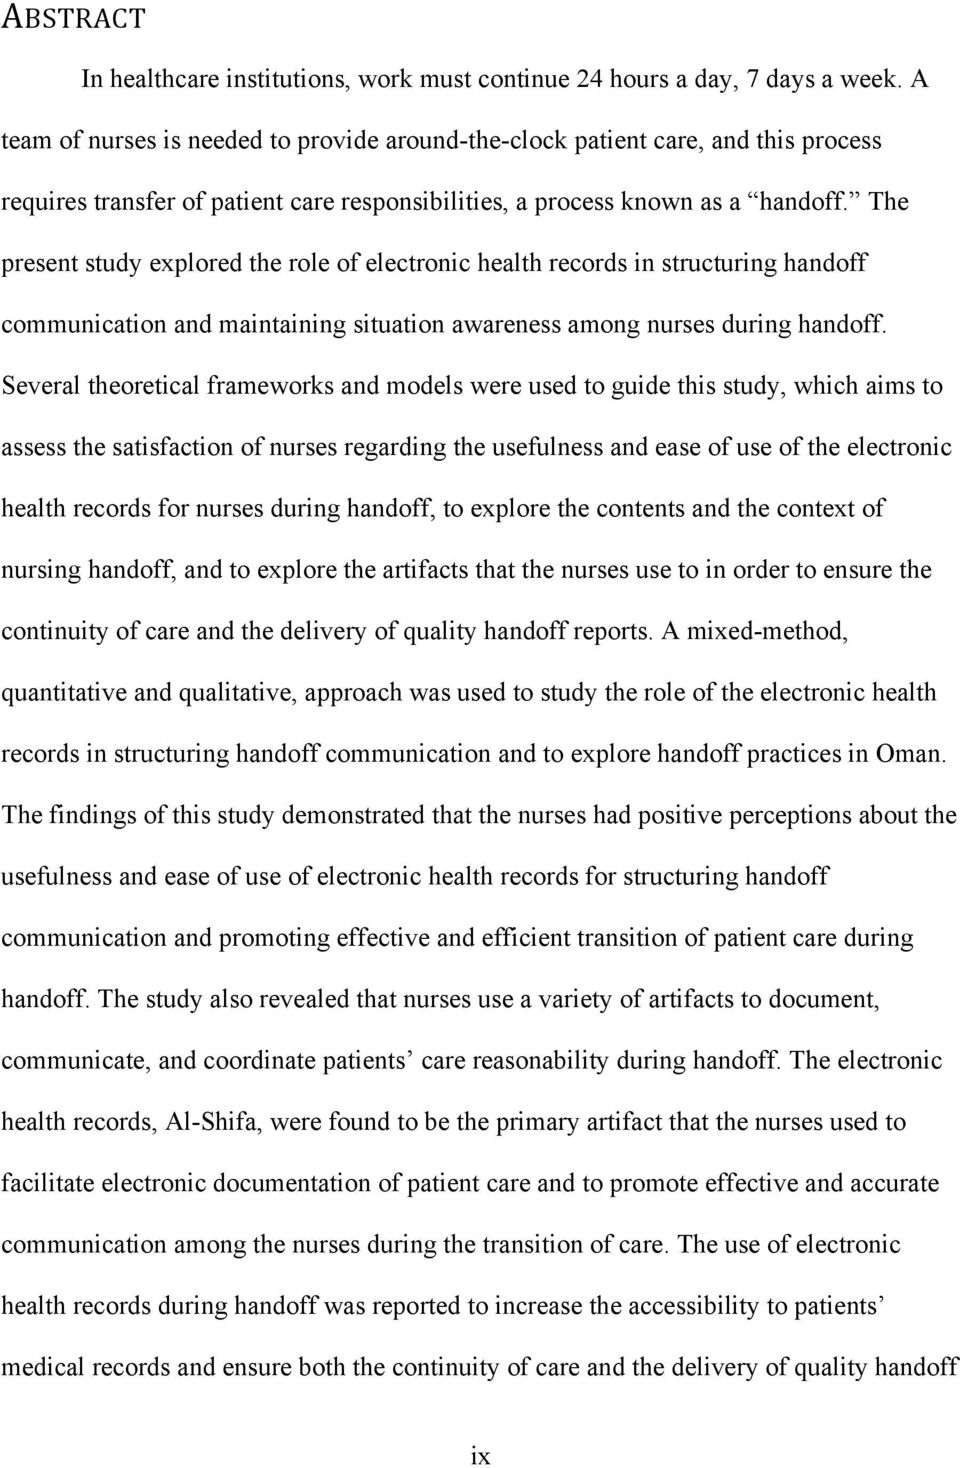 The Role Of Electronic Health Records In Structuring Nursing Handoff